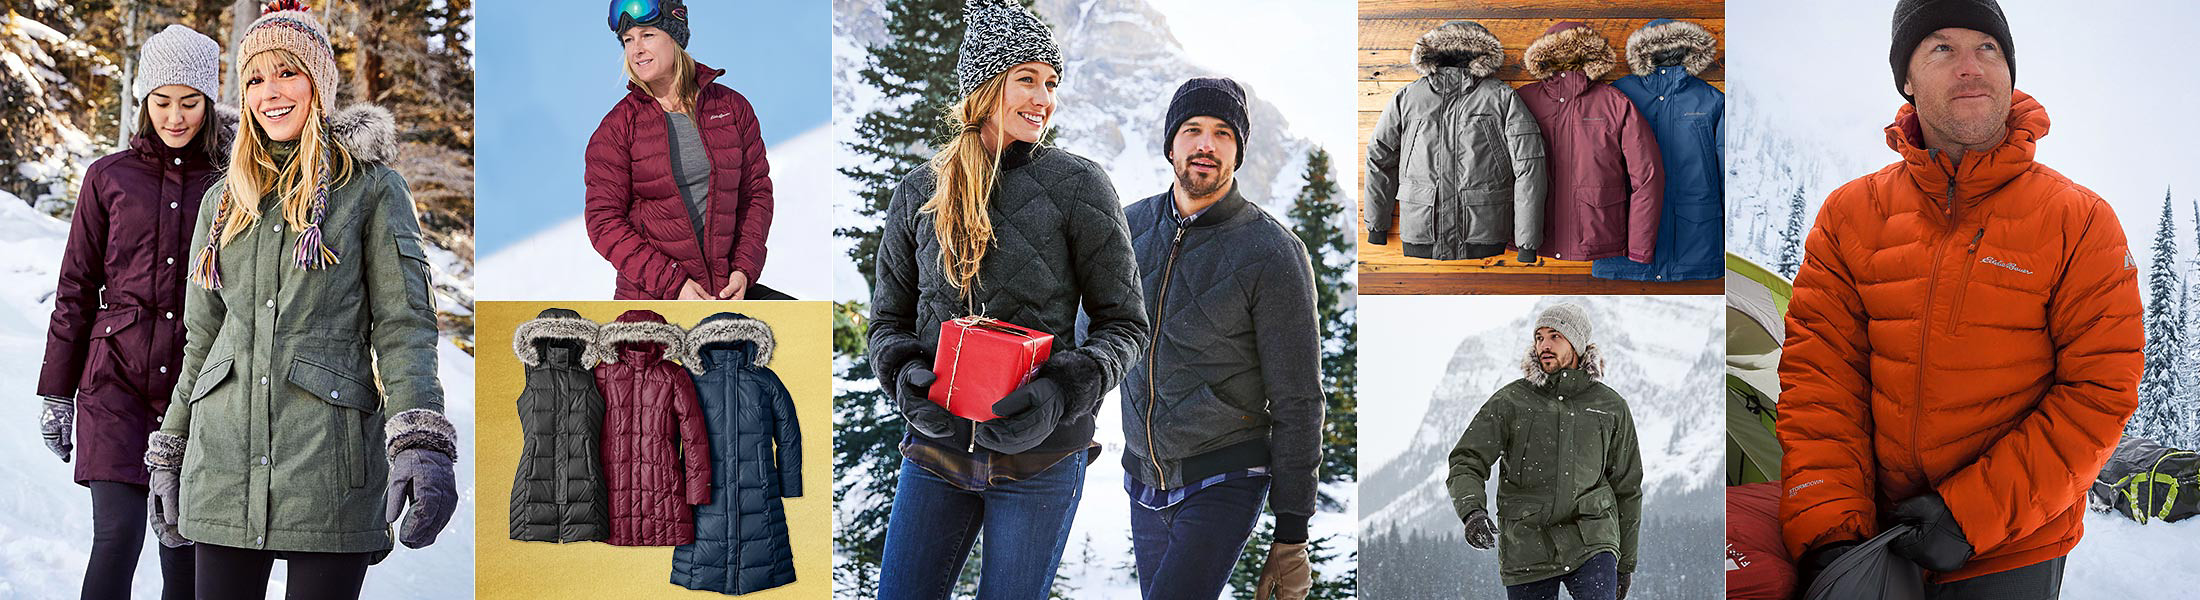 A collage of images featuring different styles and colors of down outerwear